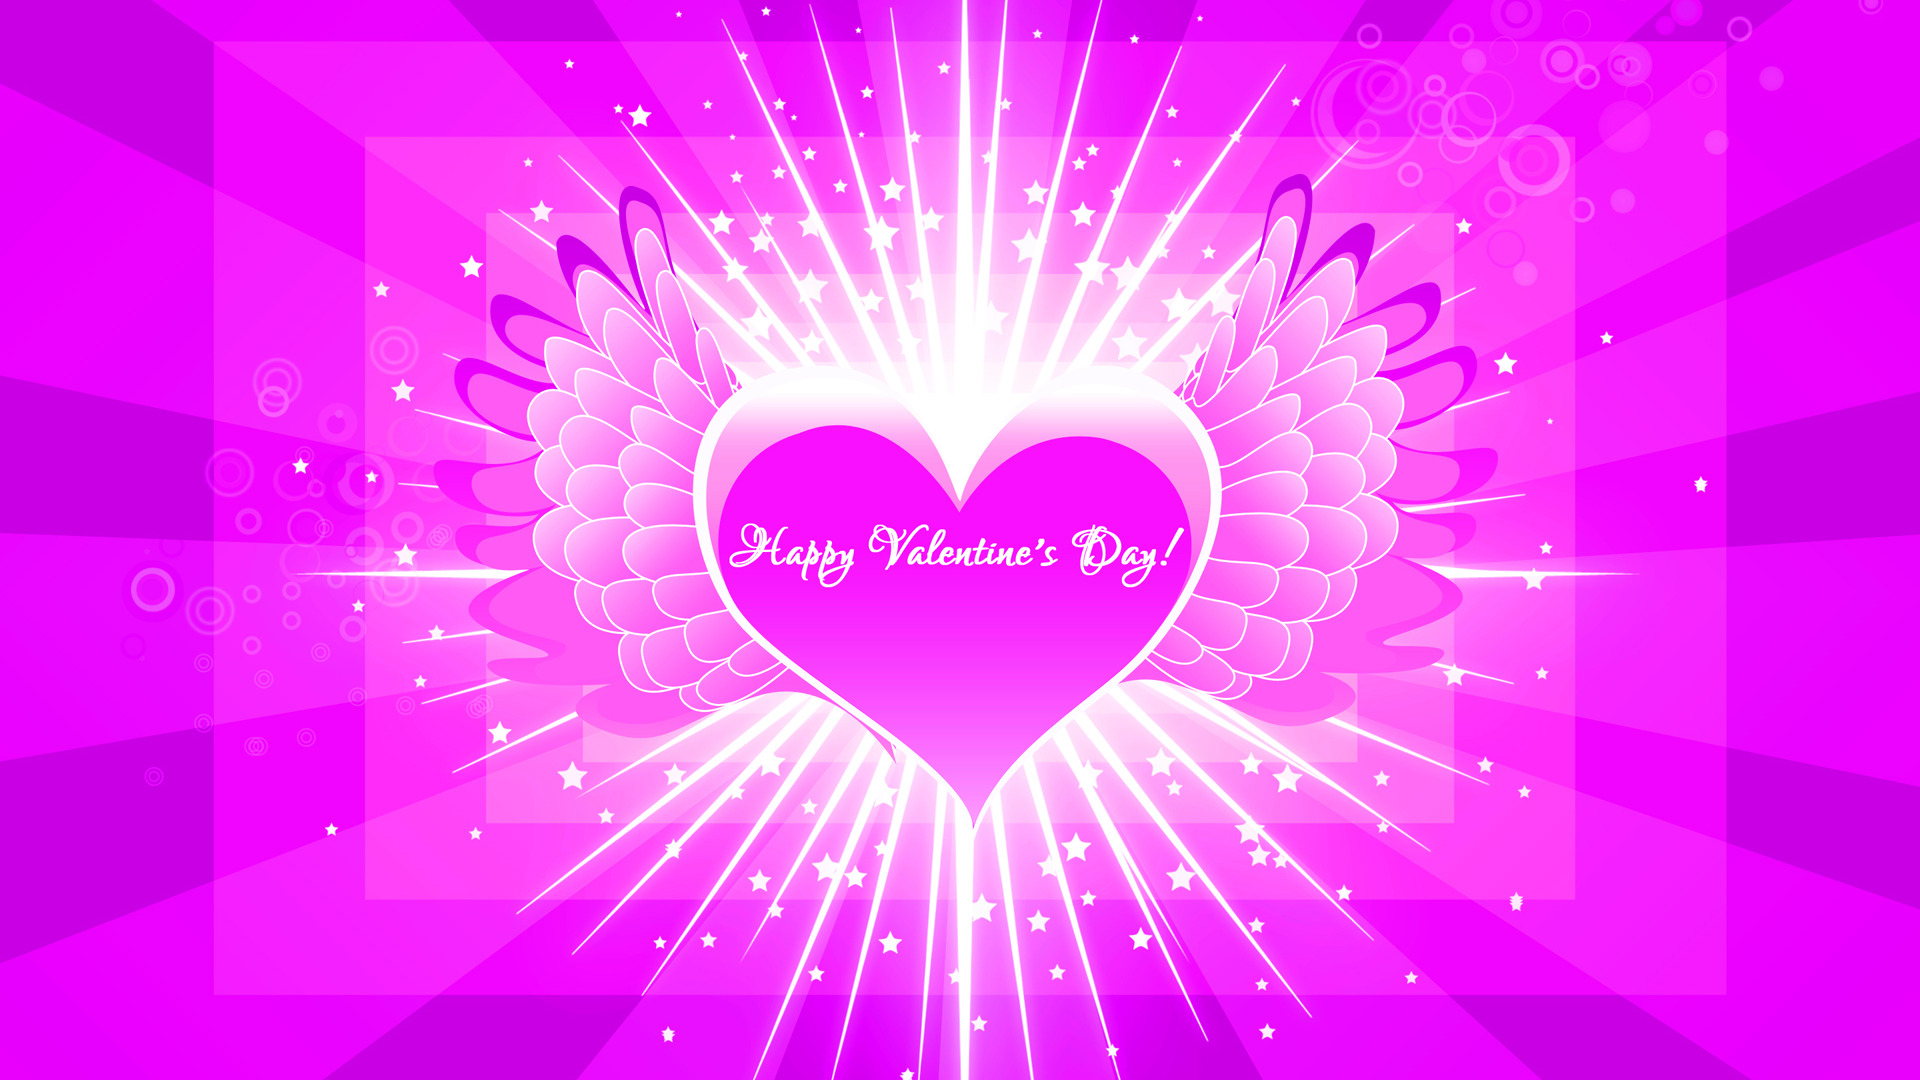 happy-valentines-day-2015-hd-wallpaper-Images